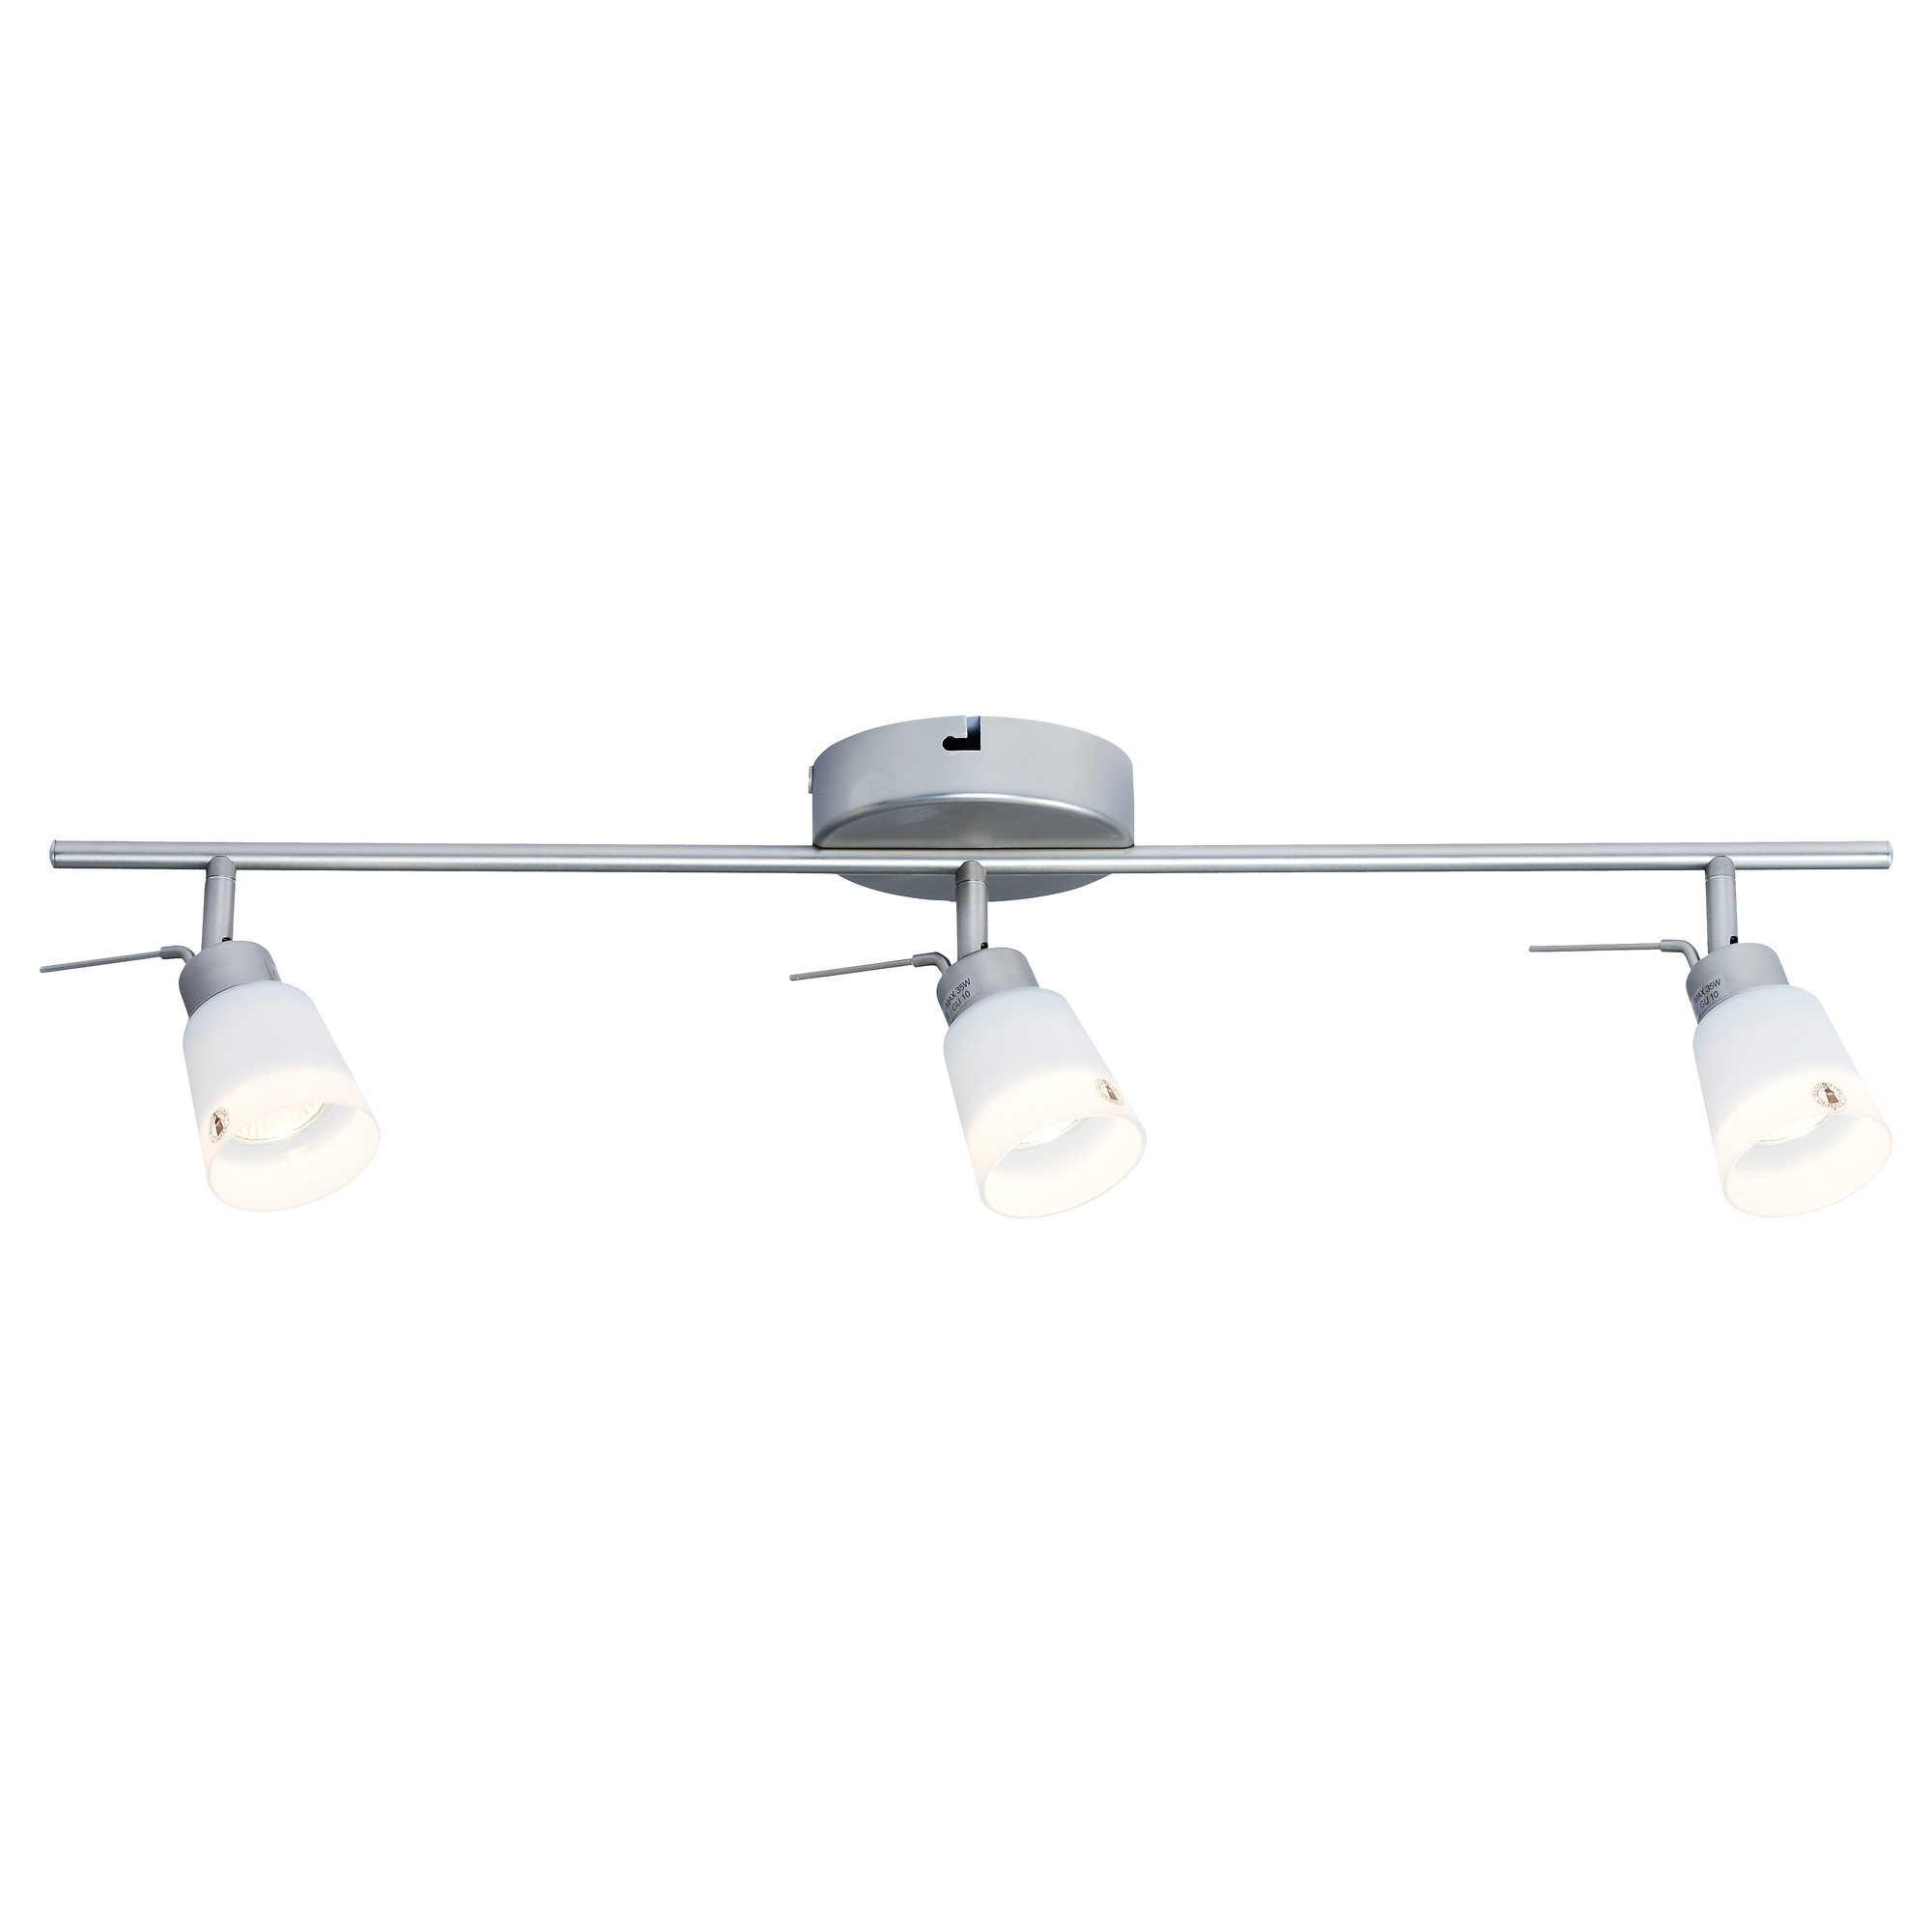 track lighting replacement. BASISK Ceiling Track, 3 Spotlights - IKEA Lighting Replacement For Kitchen Track N